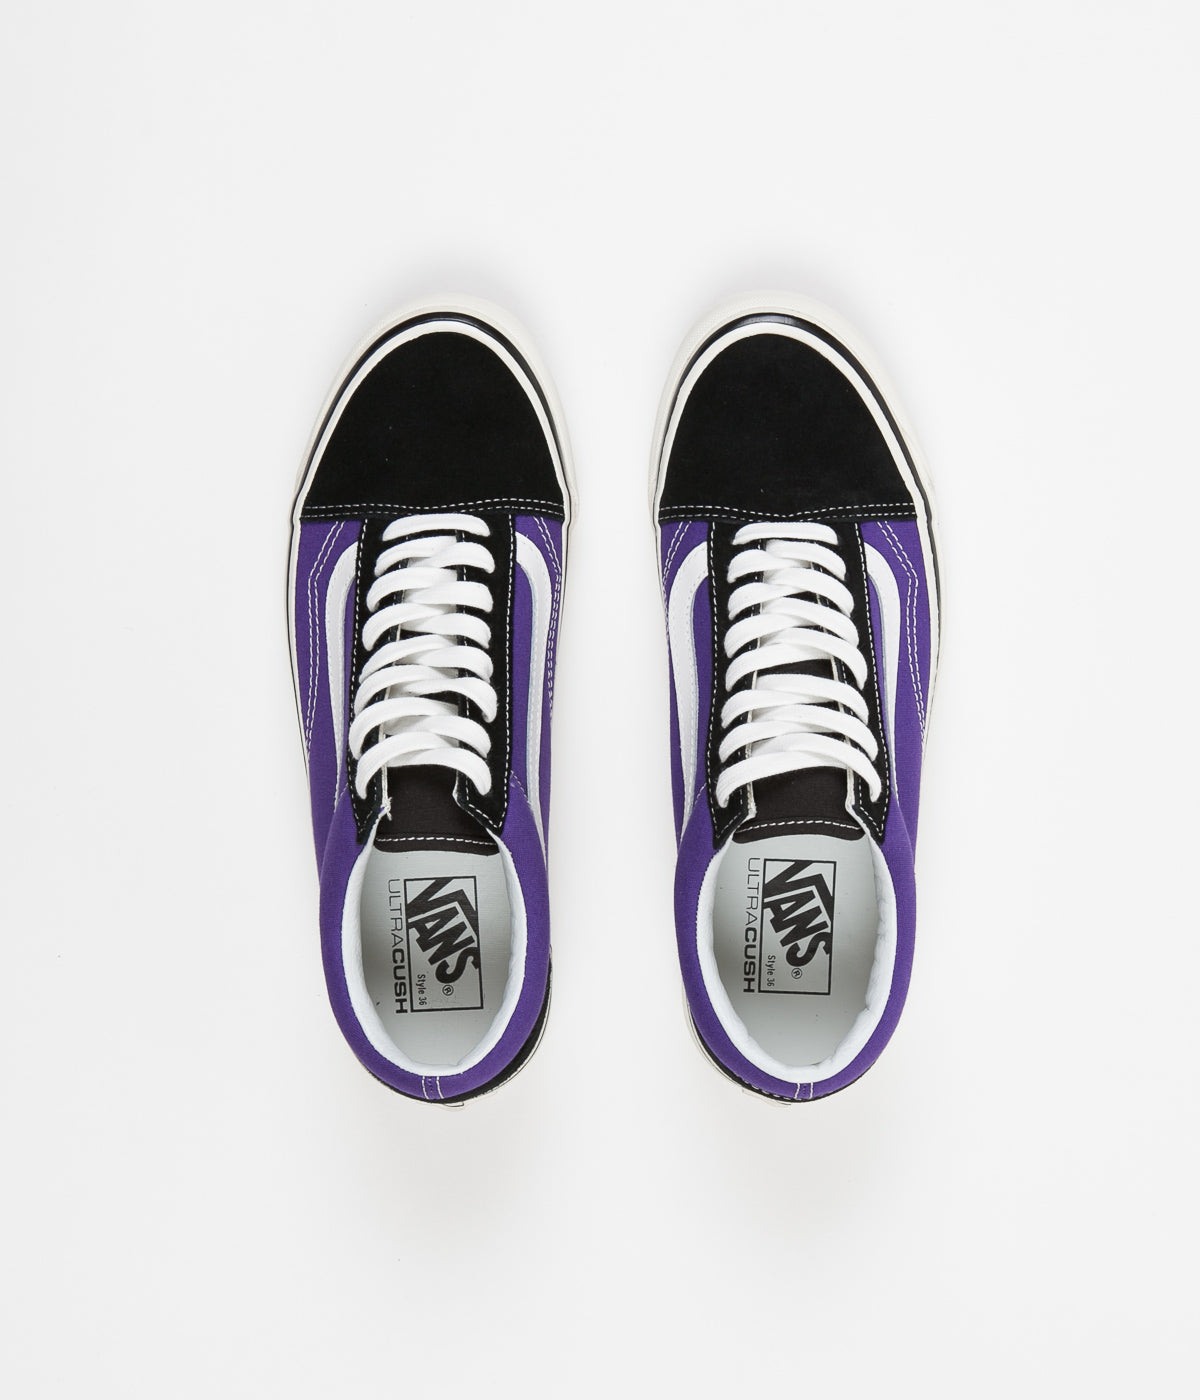 38d2e99431 Vans Old Skool 36 DX Anaheim Factory Shoes - Black   OG Bright Purple ...